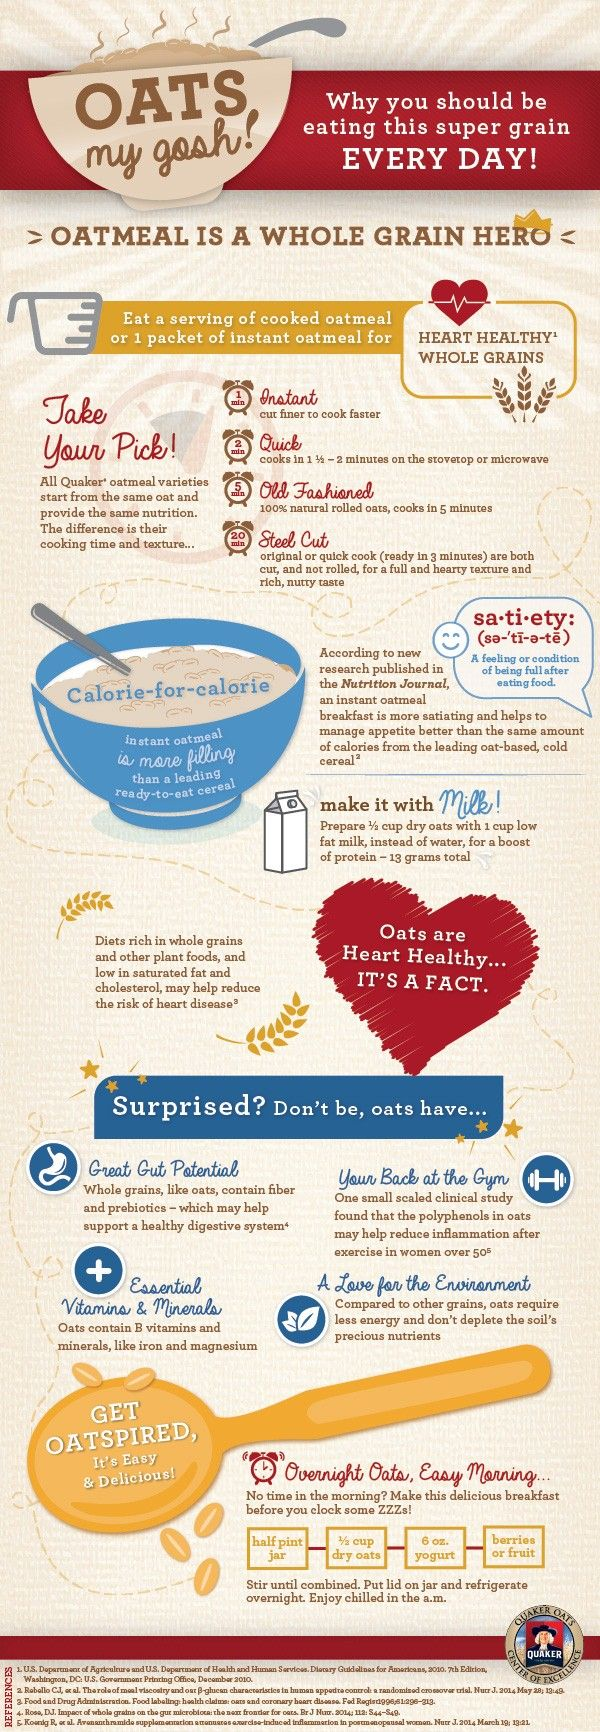 Great Tips about Oats